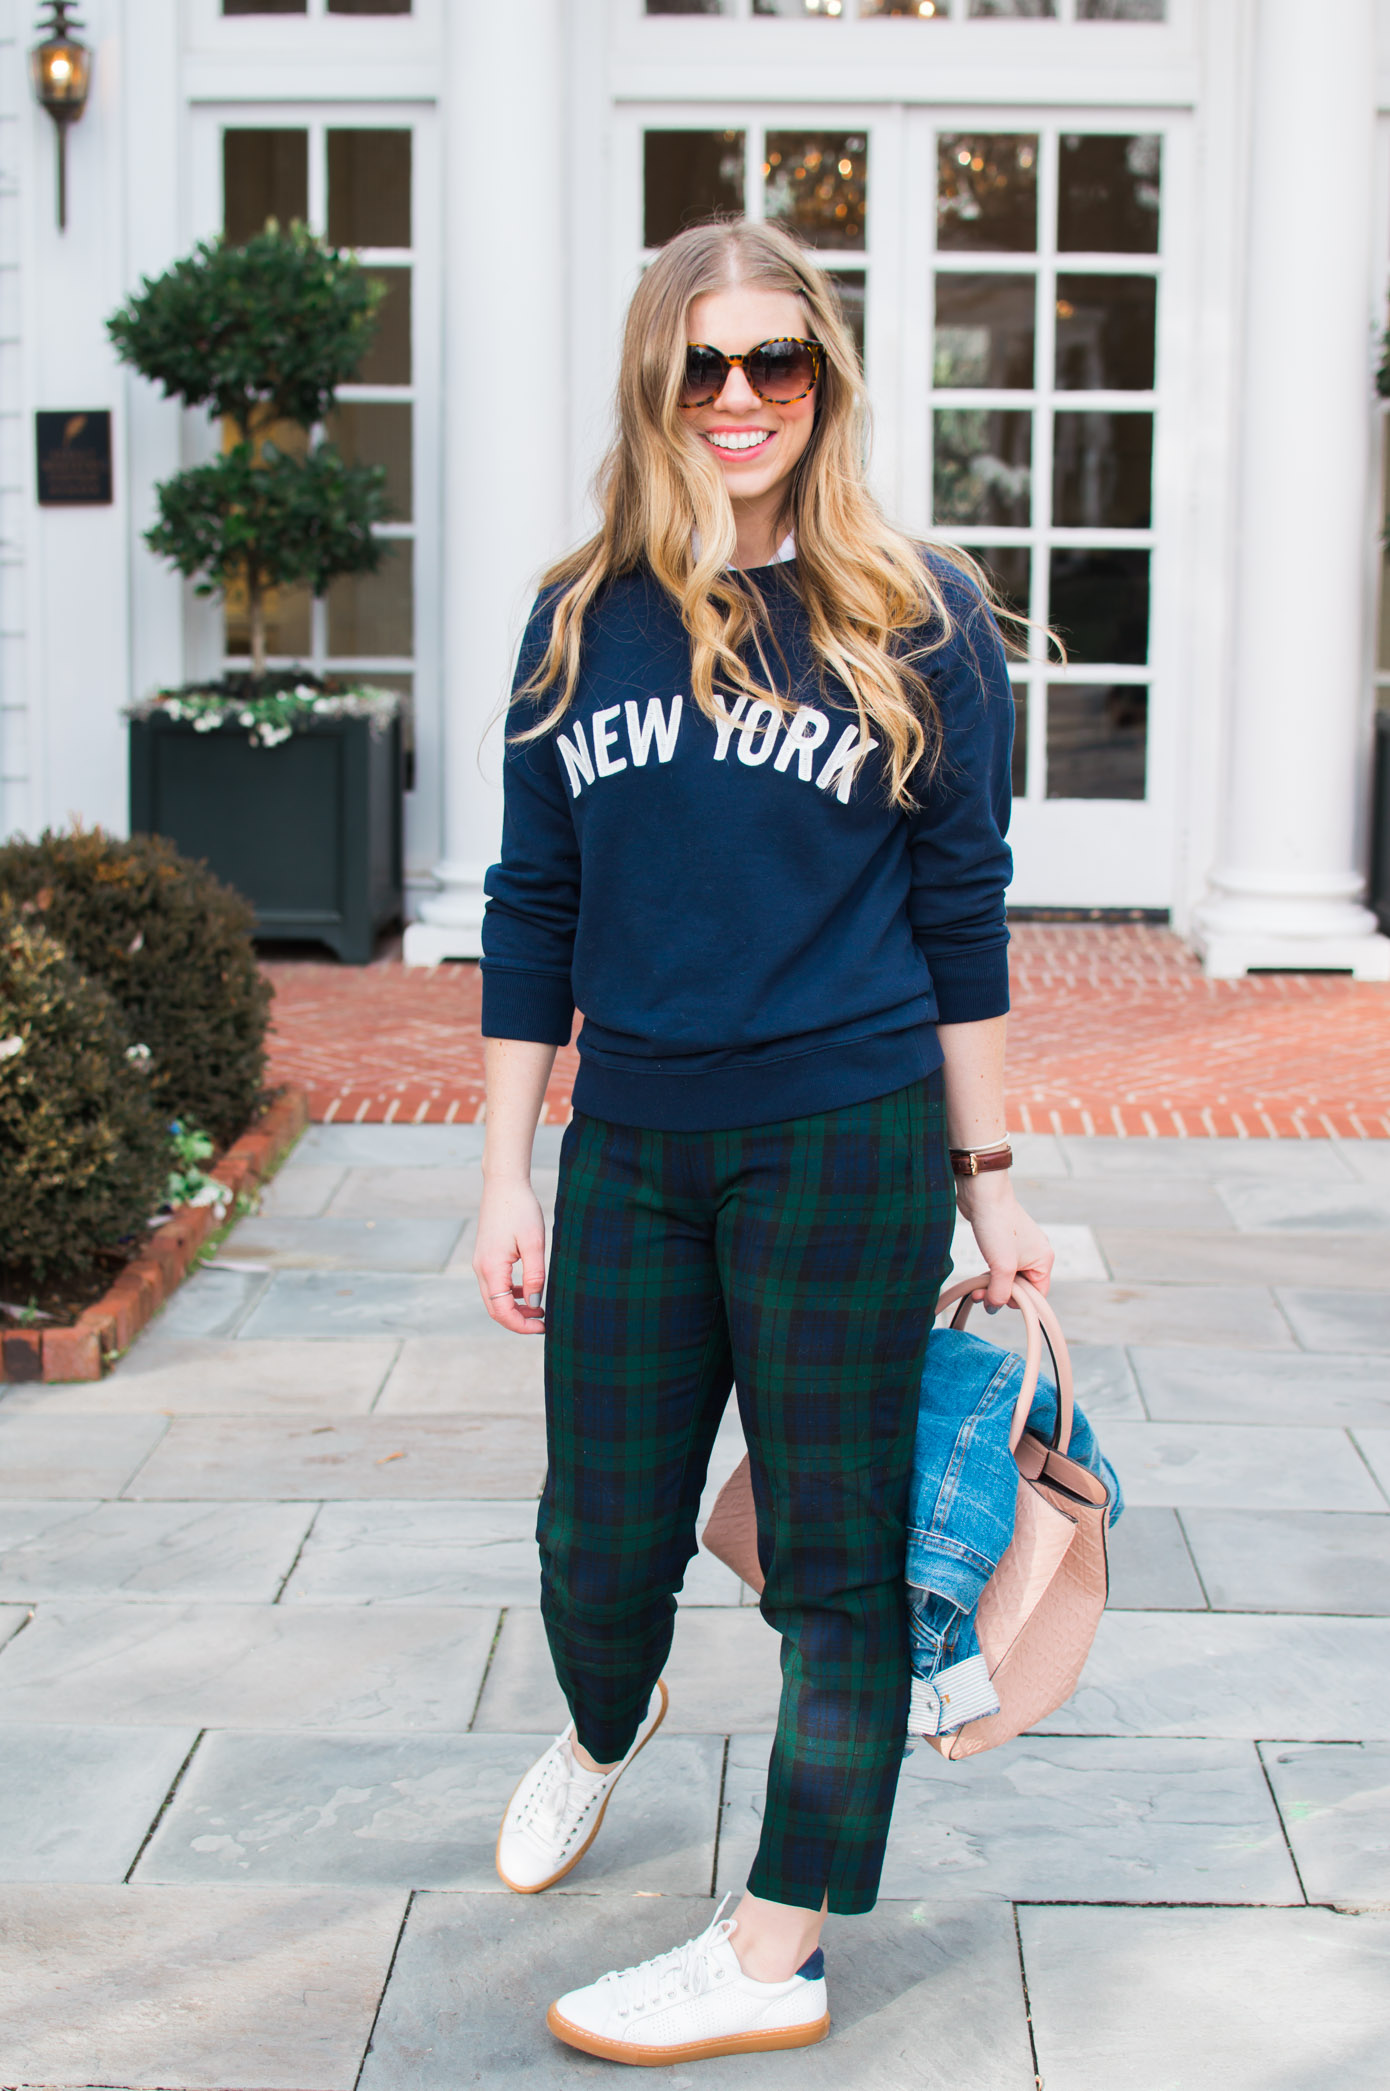 Casual Plaid Pants | New York Sweatshirt | Louella Reese Life & Style Blog